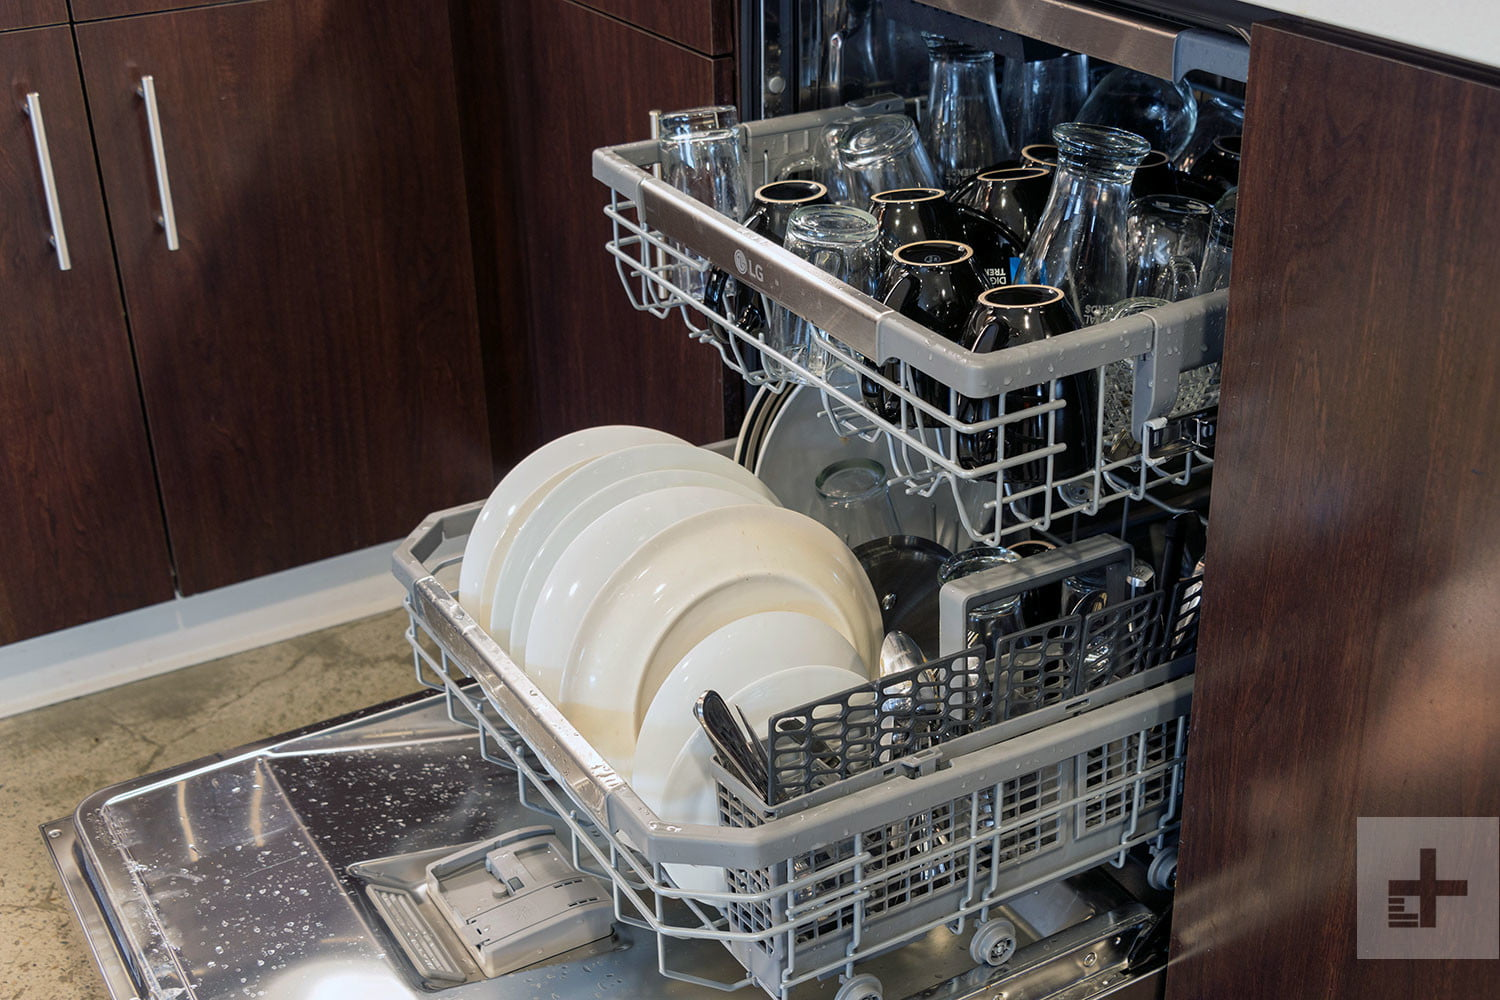 Best Cleaning Dishwasher 2019 The Best Dishwashers You Can Buy in 2019 | Digital Trends